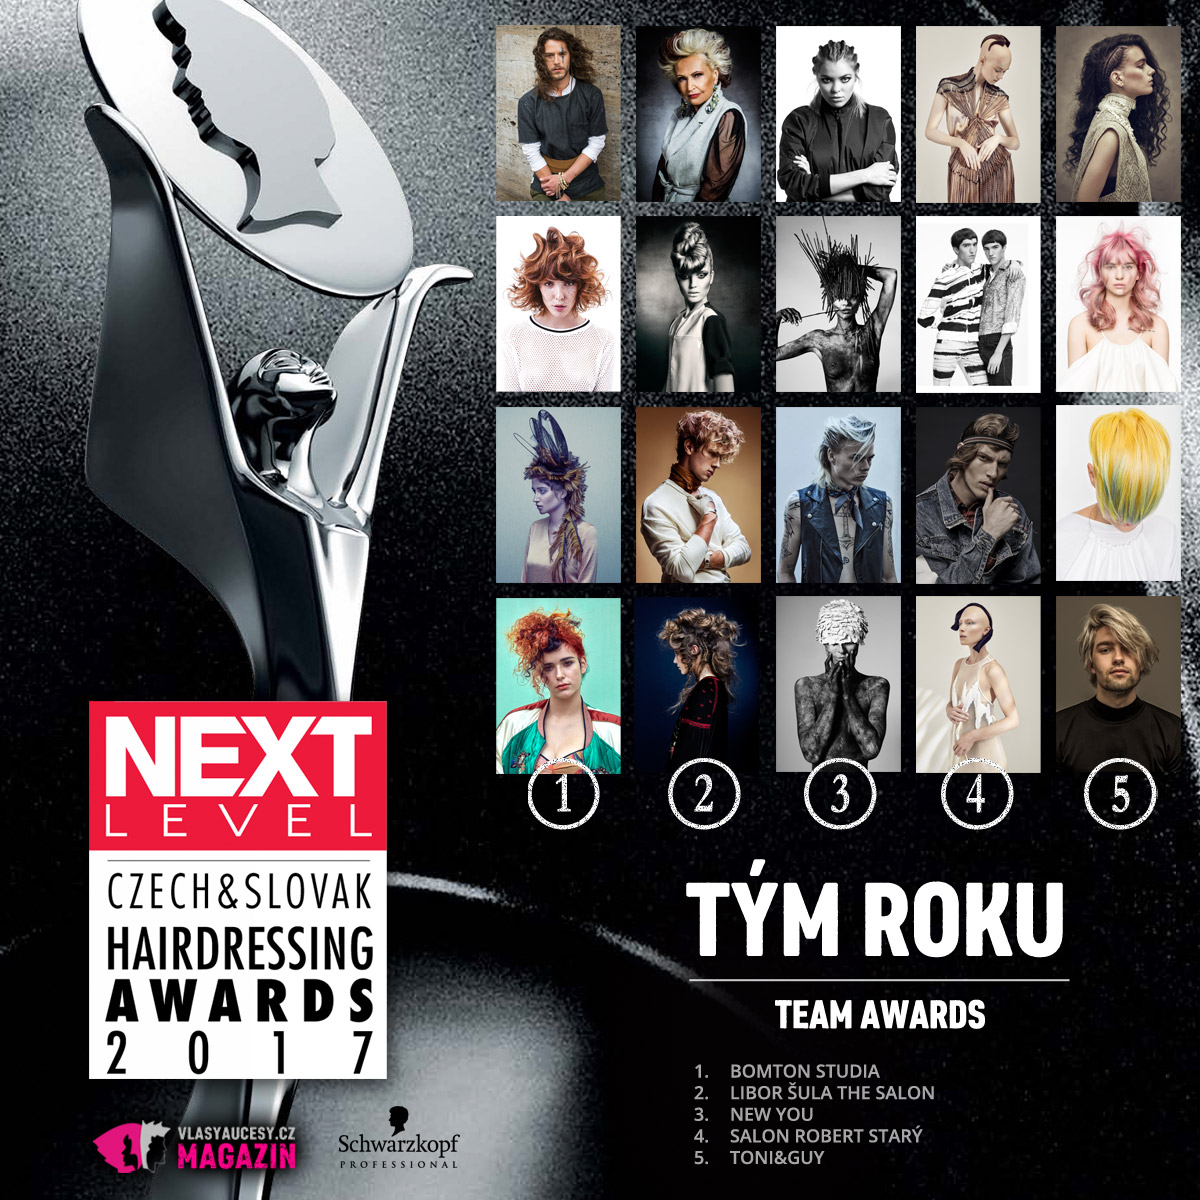 Czech&Slovak Hairdressing Awards 2017 – kategorie Tým roku.